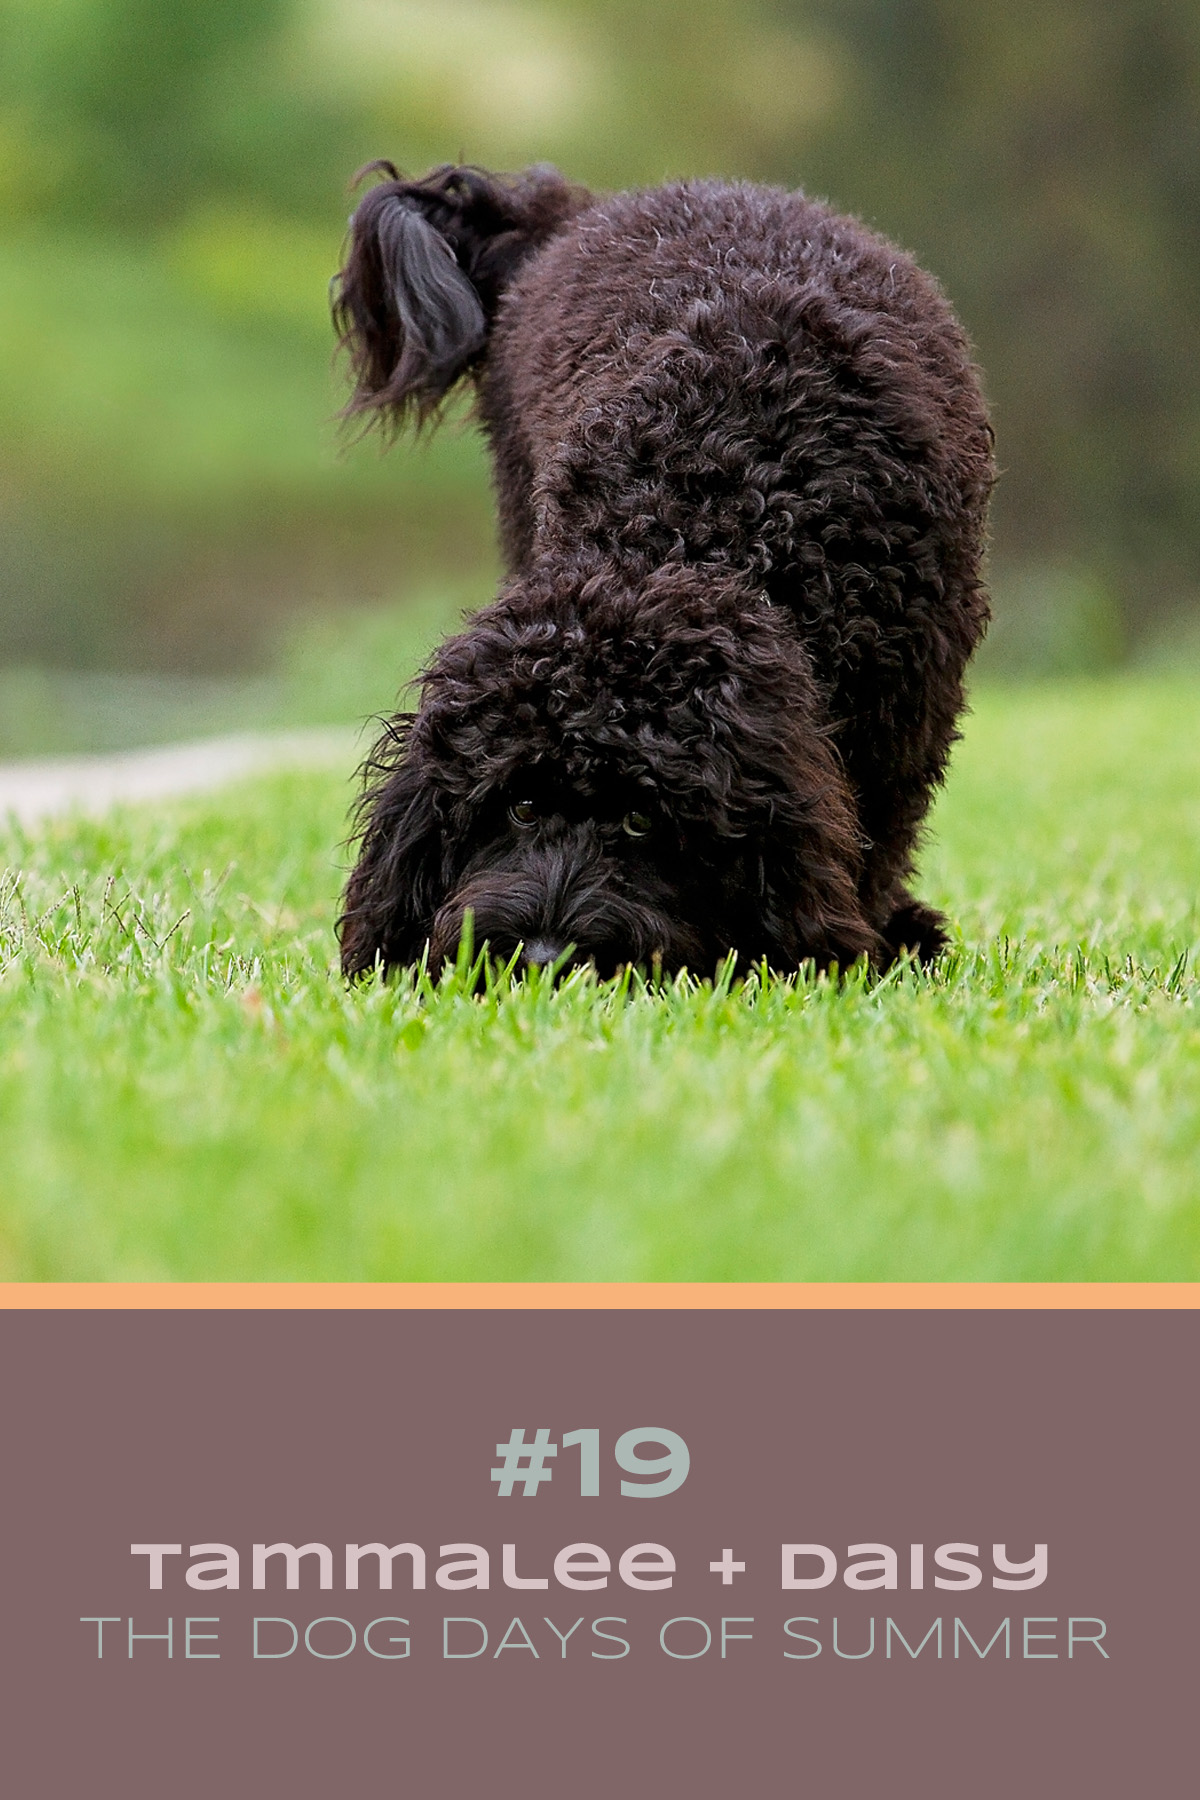 Black cavoodle puppy sniffs the green grass during their Dog Days of Summer photo session with Sydney based pet photographer, Pawtastic Photography.